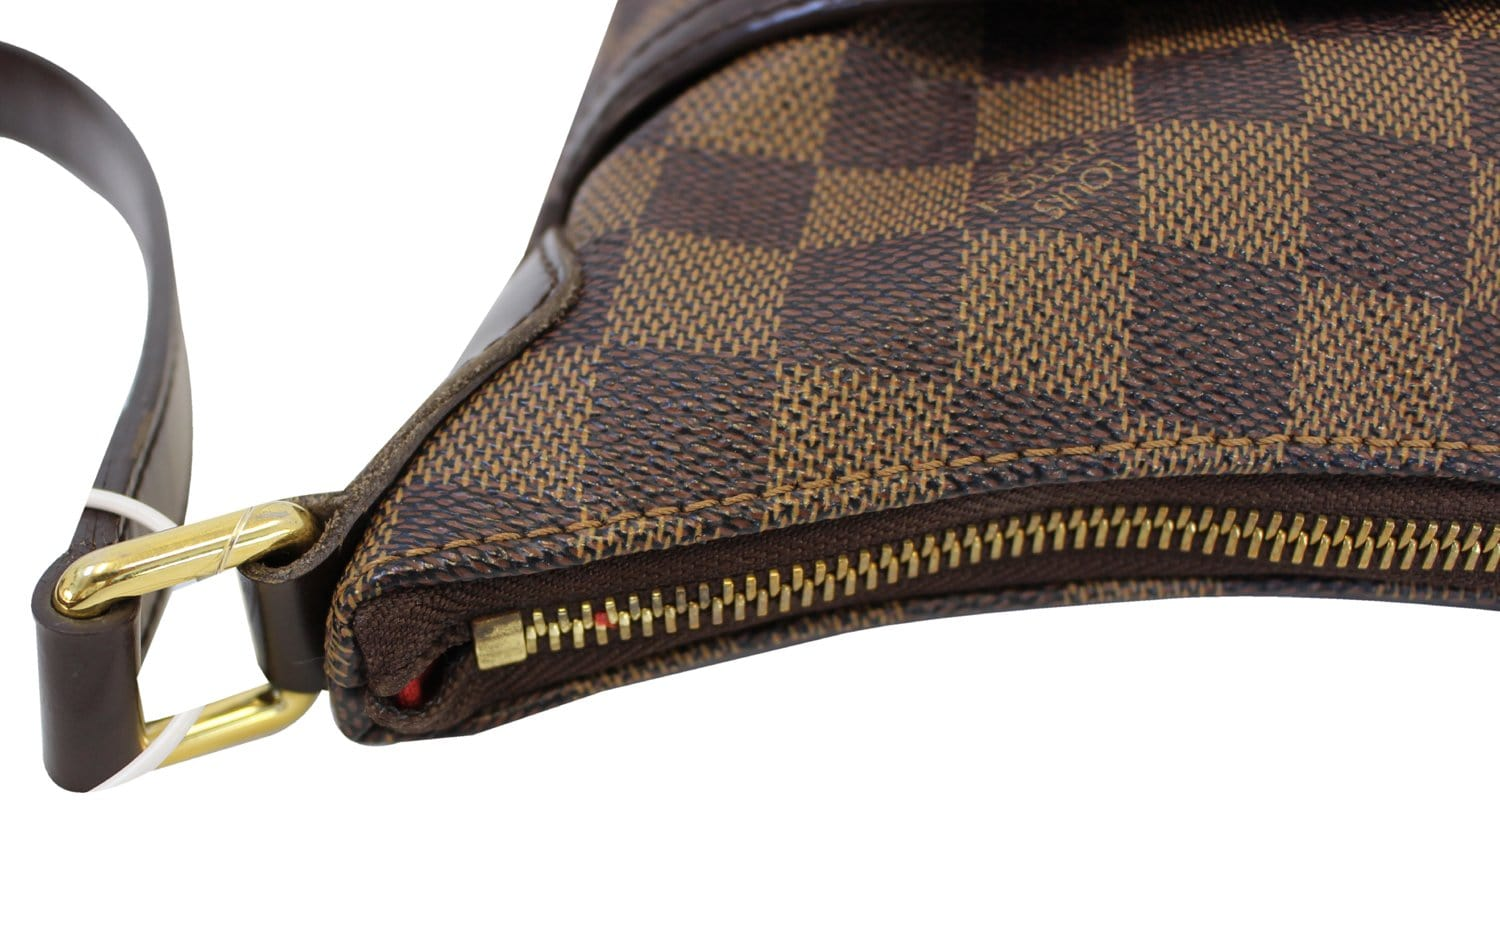 9aaa2e6fadae Authentic LOUIS VUITTON Bloomsbury PM Damier Ebene Crossbody Bag TT1491